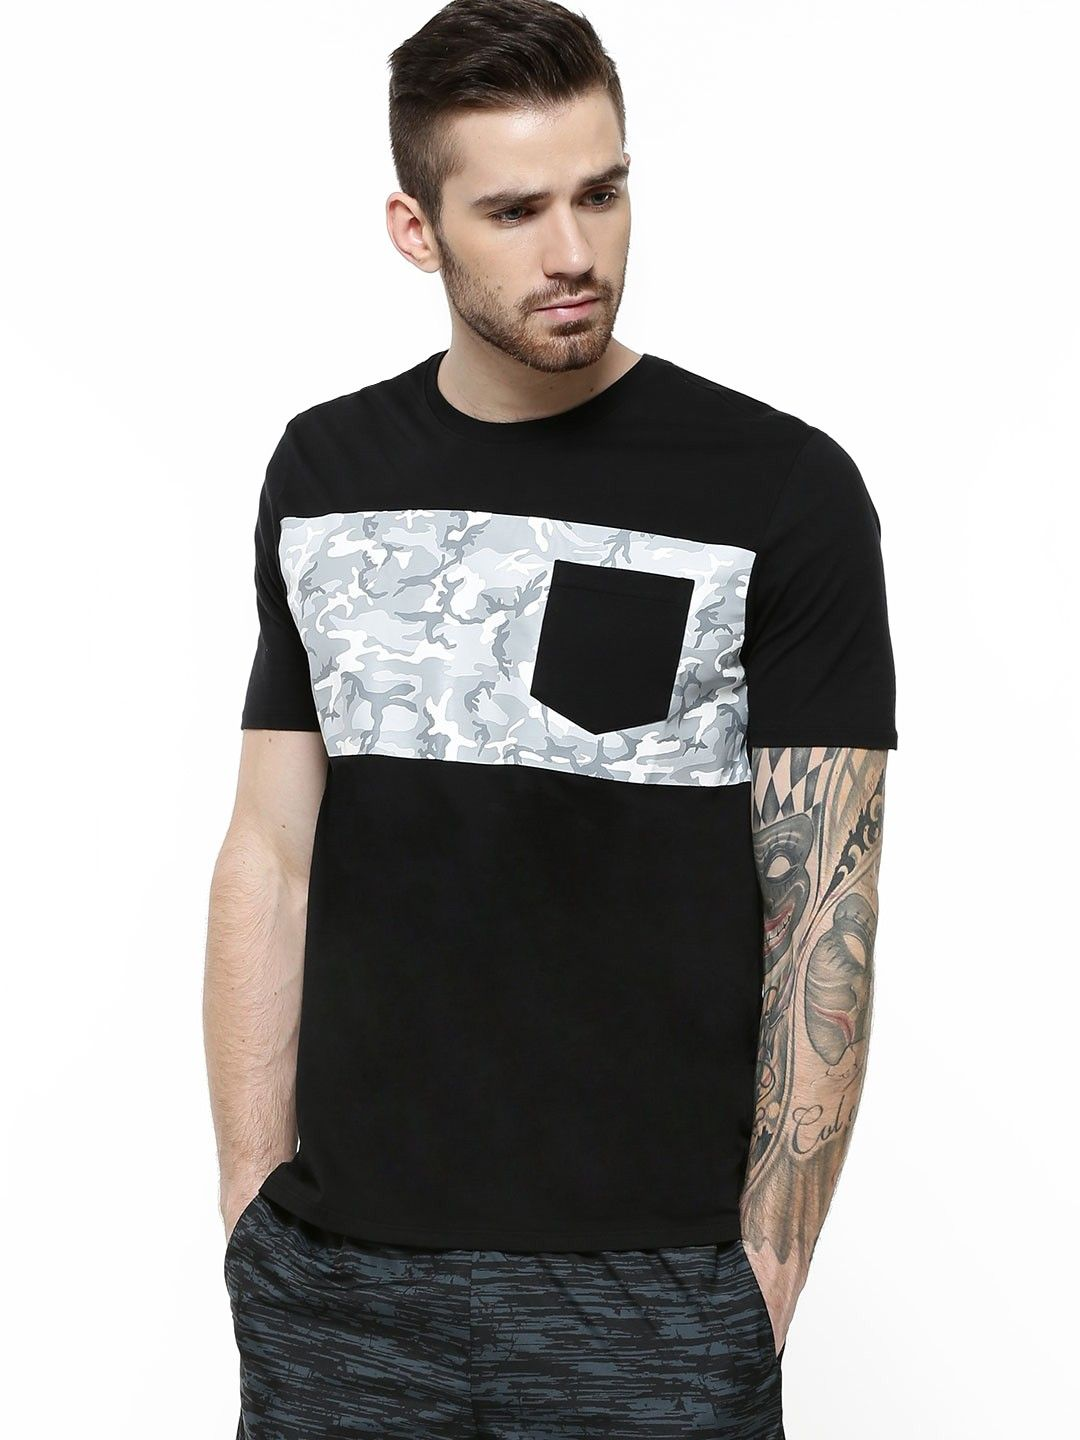 Black t shirt buy online - Nike Skateboarding Camo Pocket T Shirt Buy Men S Tee Shirts Online In India